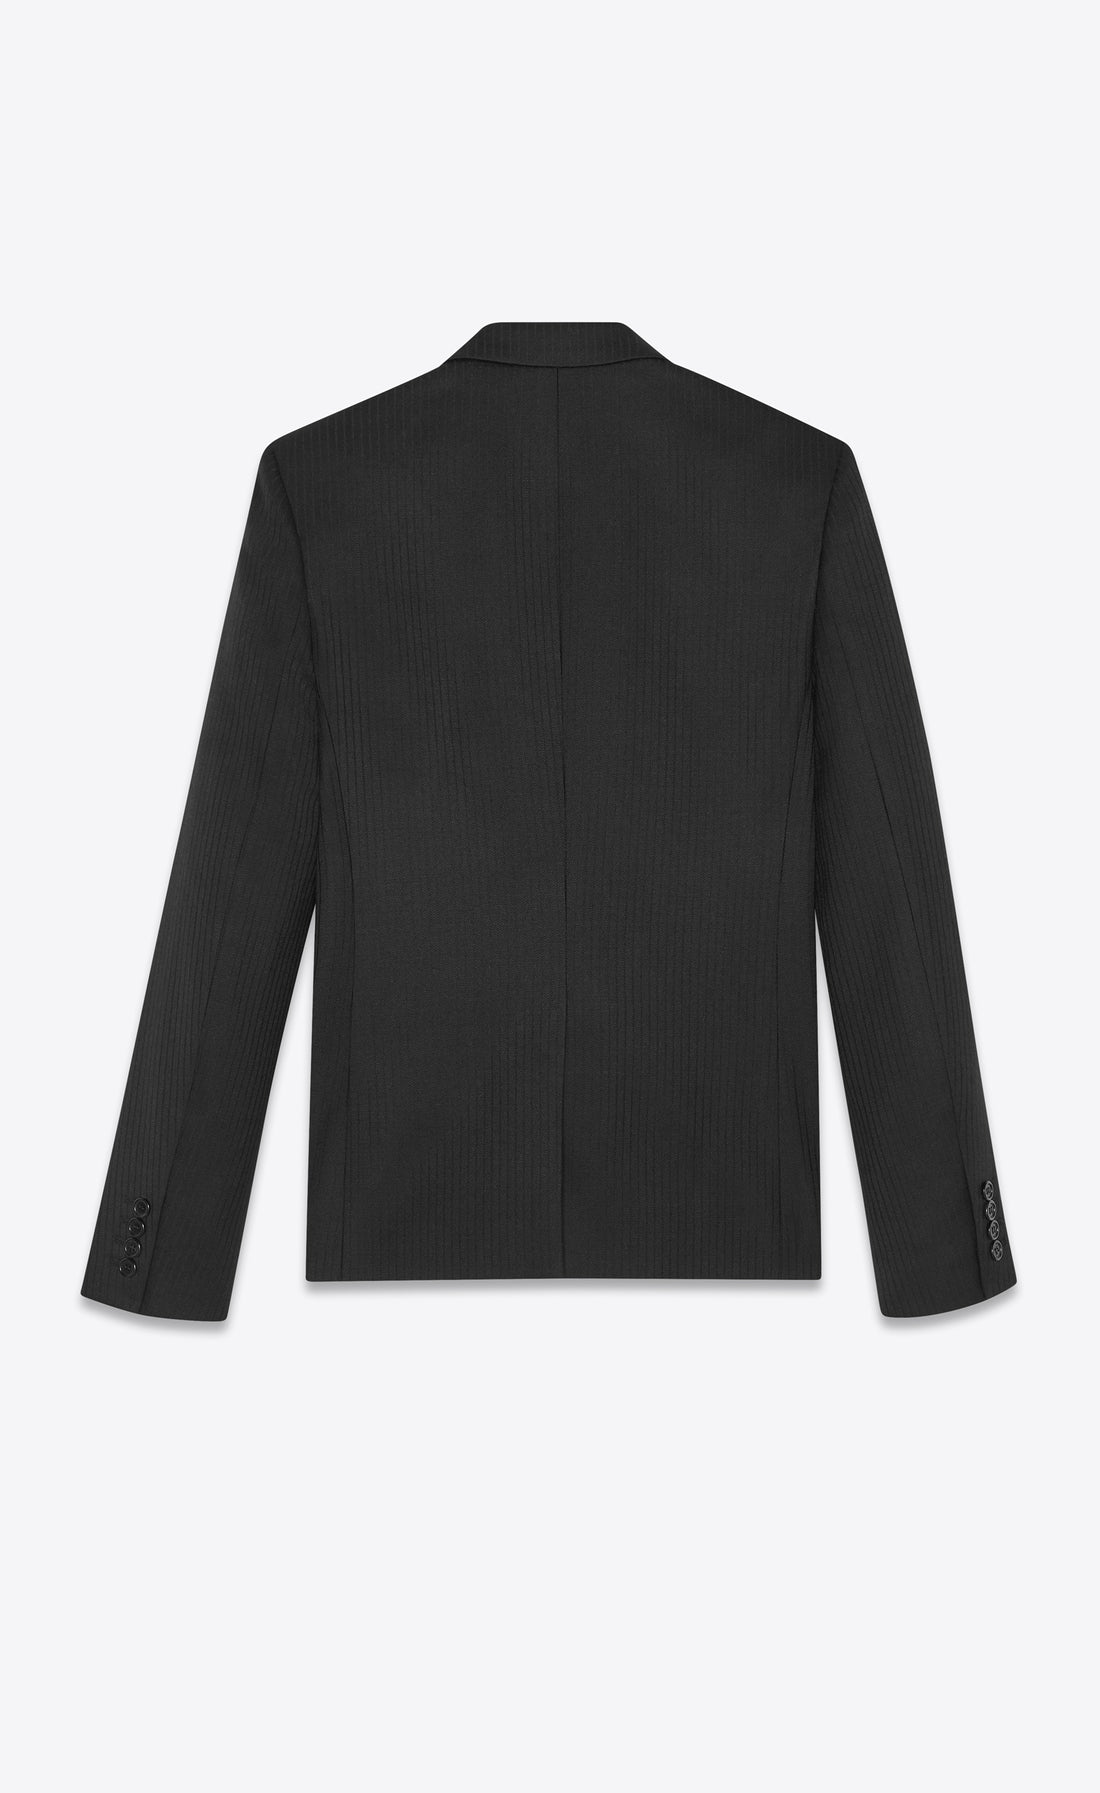 SAINT LAURENT TAILORED EMBROIDERED JACKET WITH COLLAR IN SABLÉ WITH STRIPES